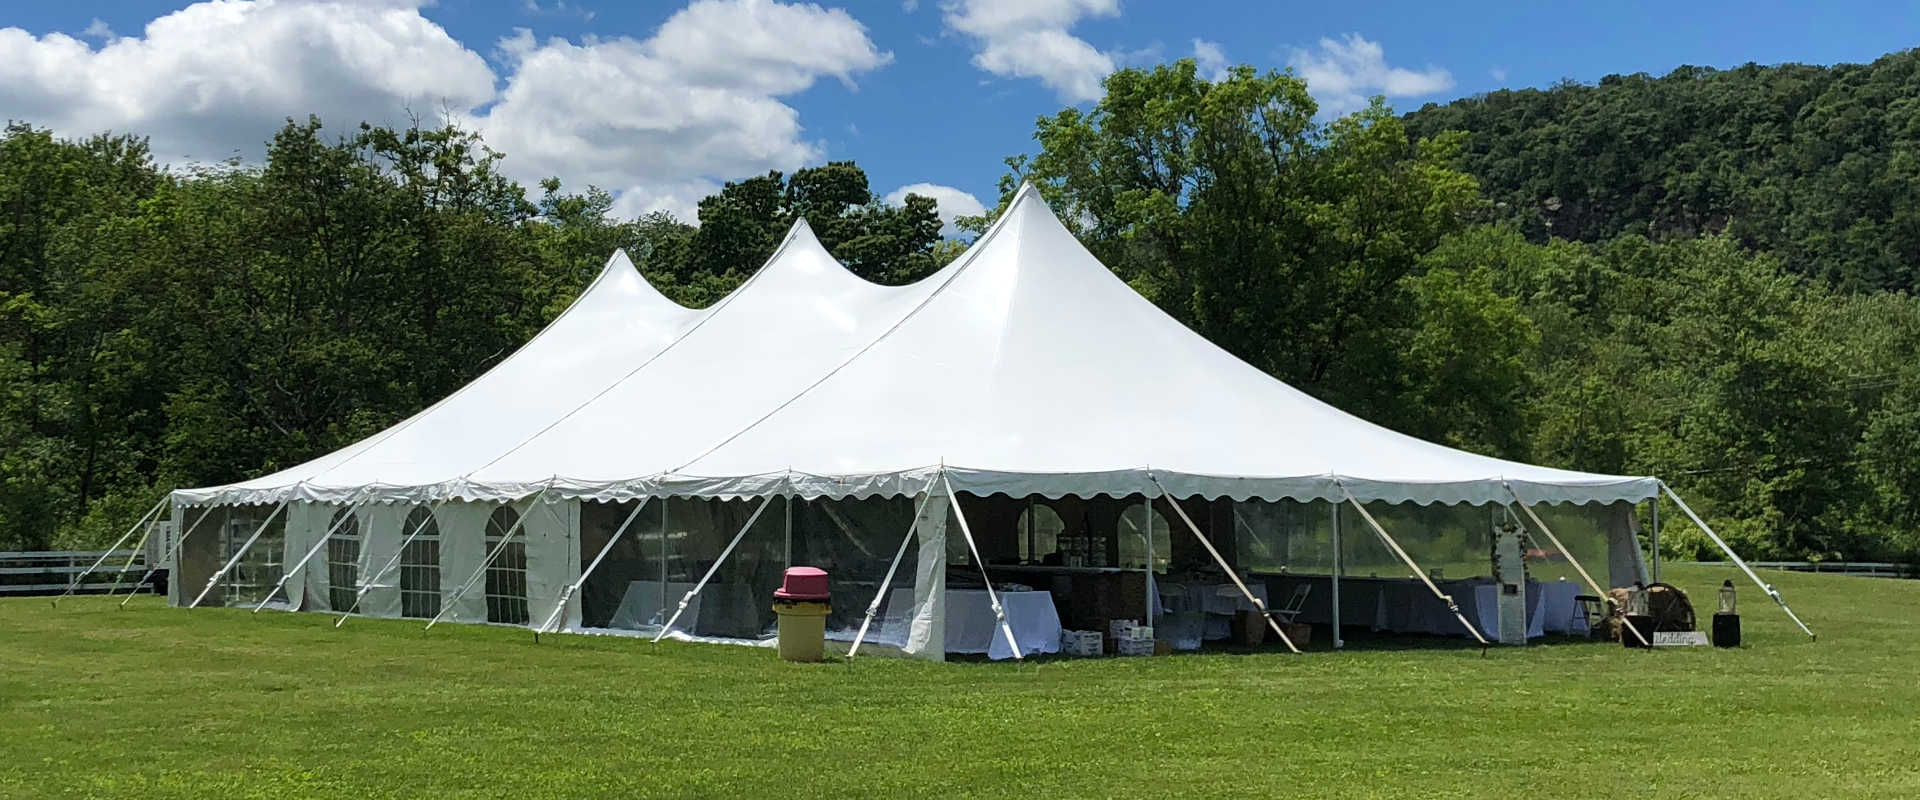 Event Rentals in the Western New Jersey and Eastern Pennsylvania